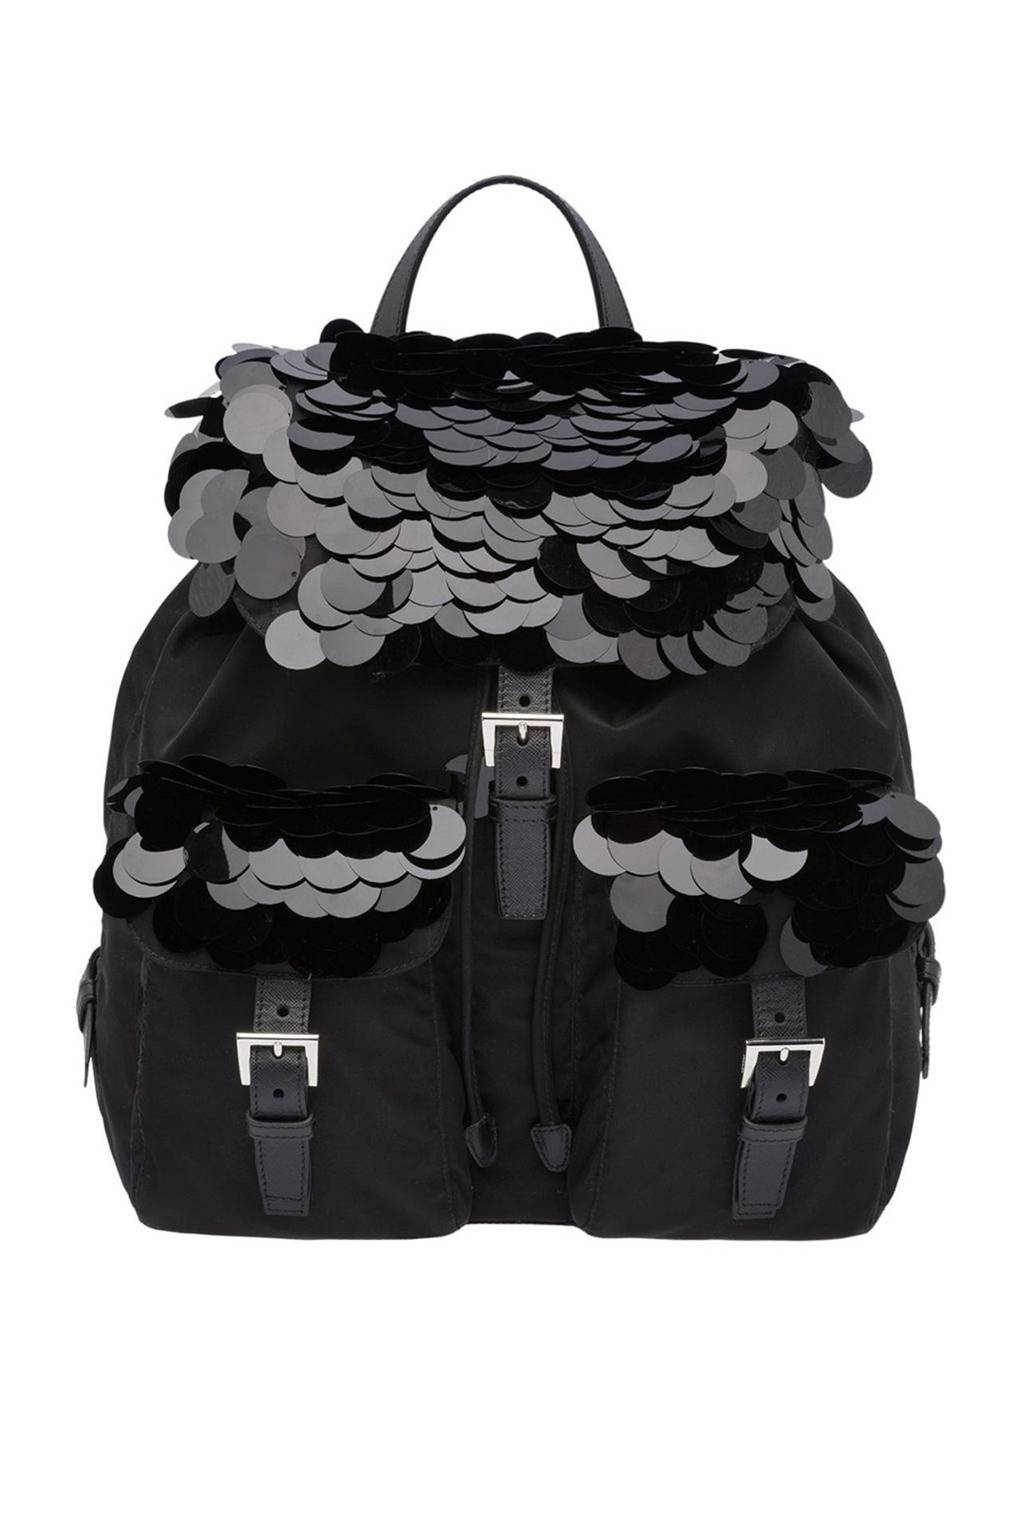 18499f60fa25 Buy Now  10 Best Fashion Backpacks